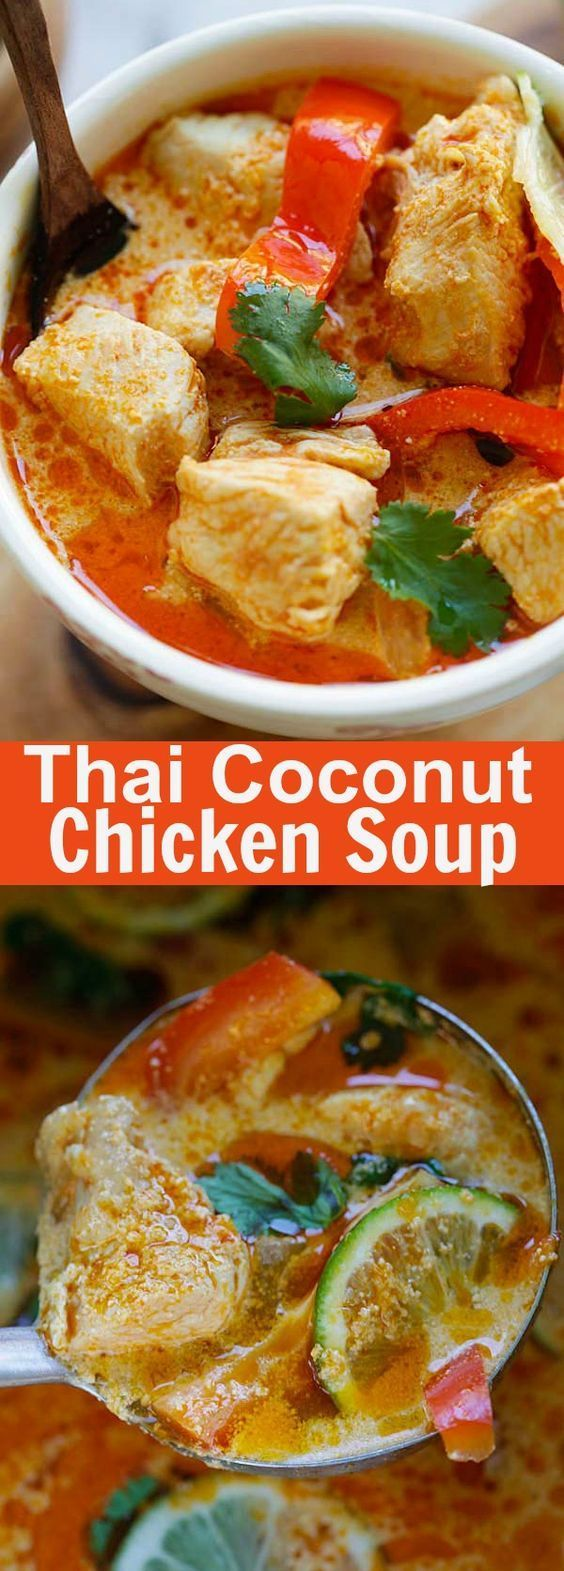 Creamy Thai Coconut Chicken Soup - easiest and fastest Thai coconut chicken recipe ever! Takes only 15 mins and dinner is ready | rasamalaysia.com